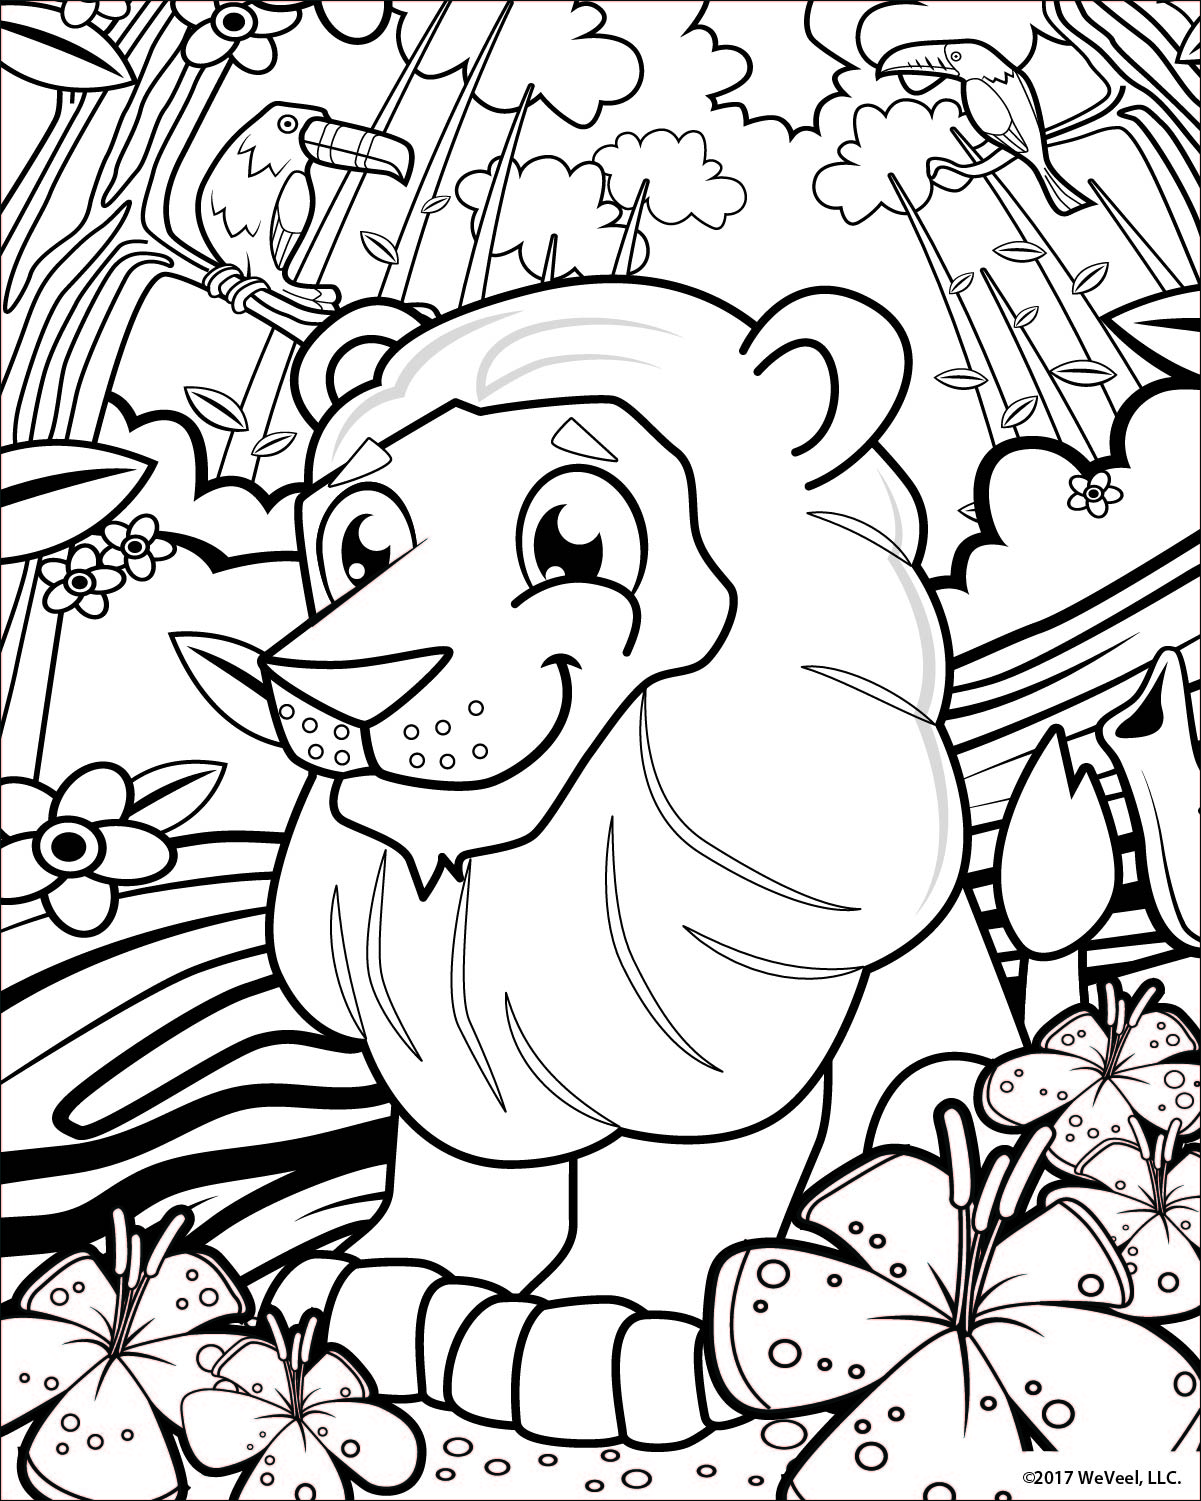 Coloring Pages: 4